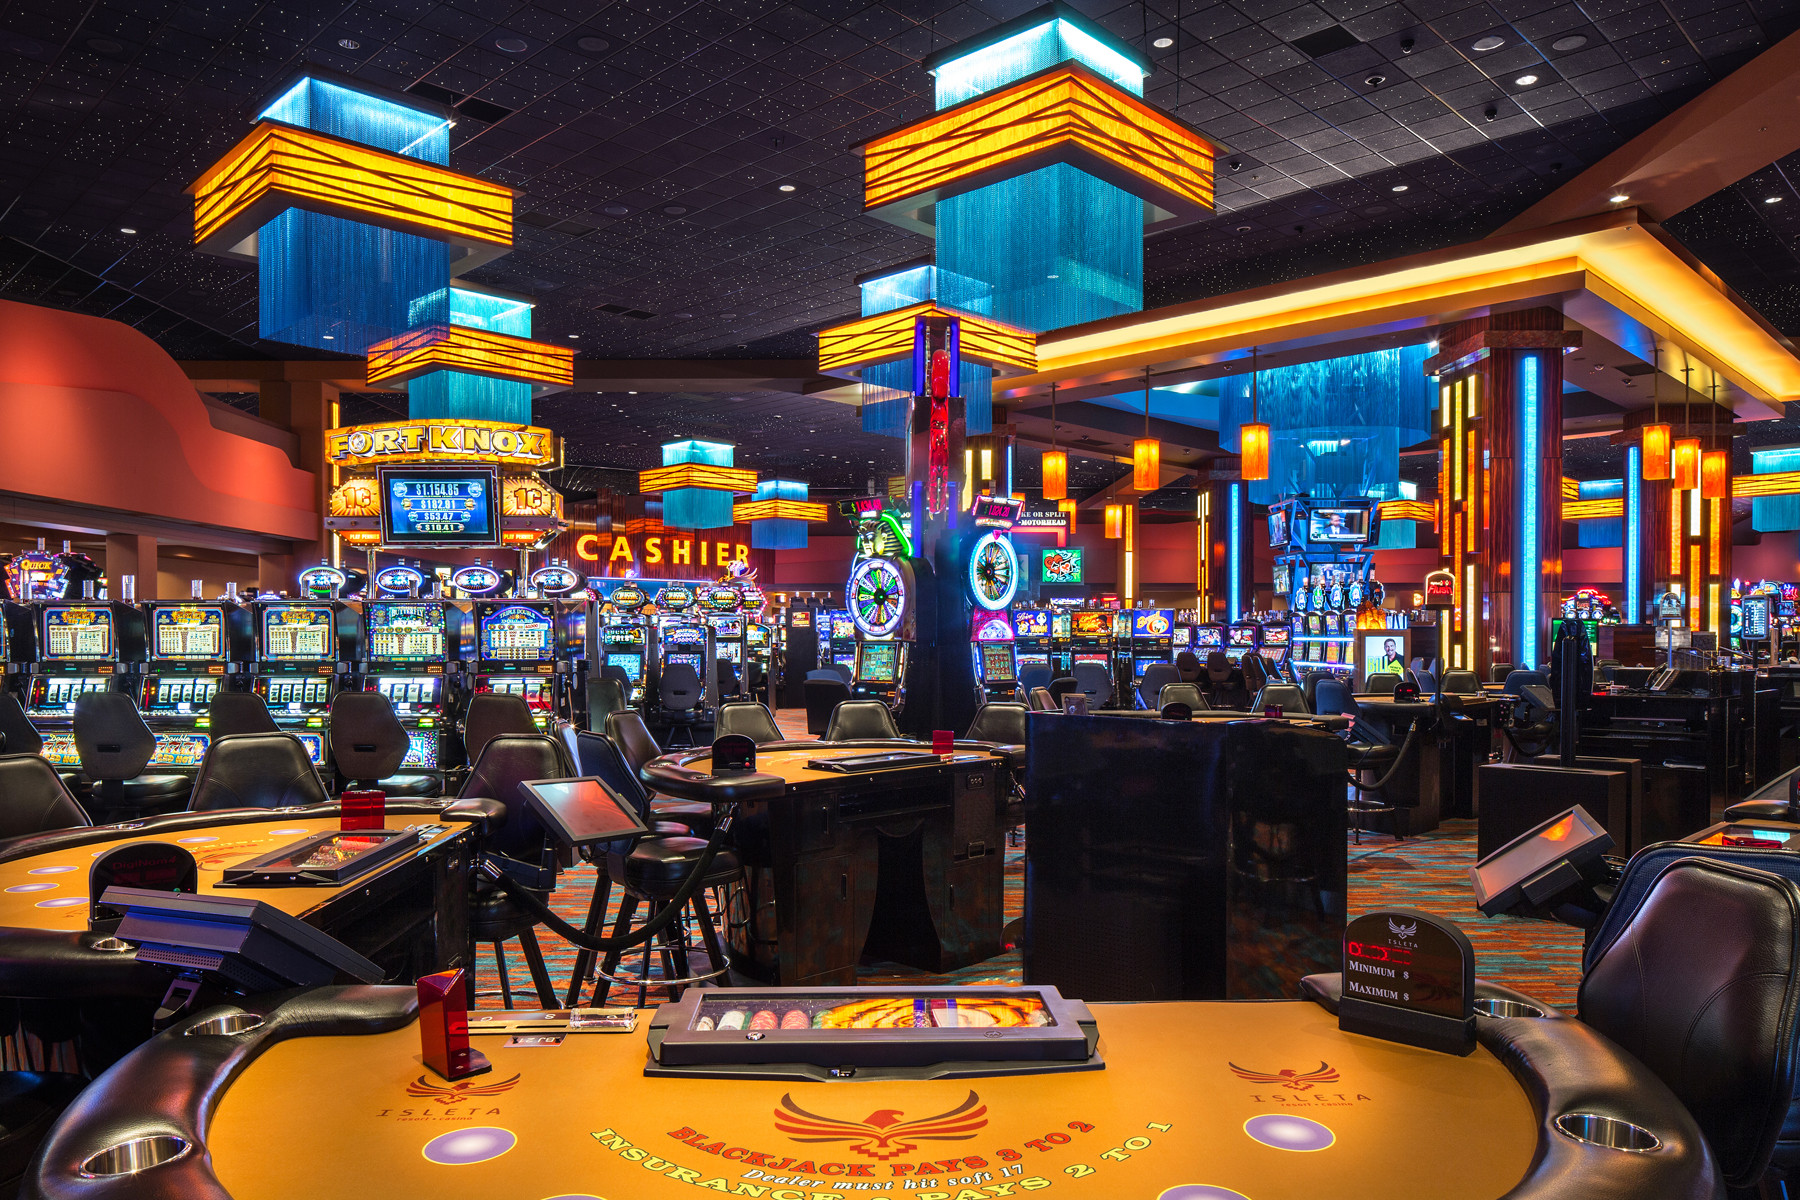 What Are The 3 Technology Trends Shaping The Casino Industry?